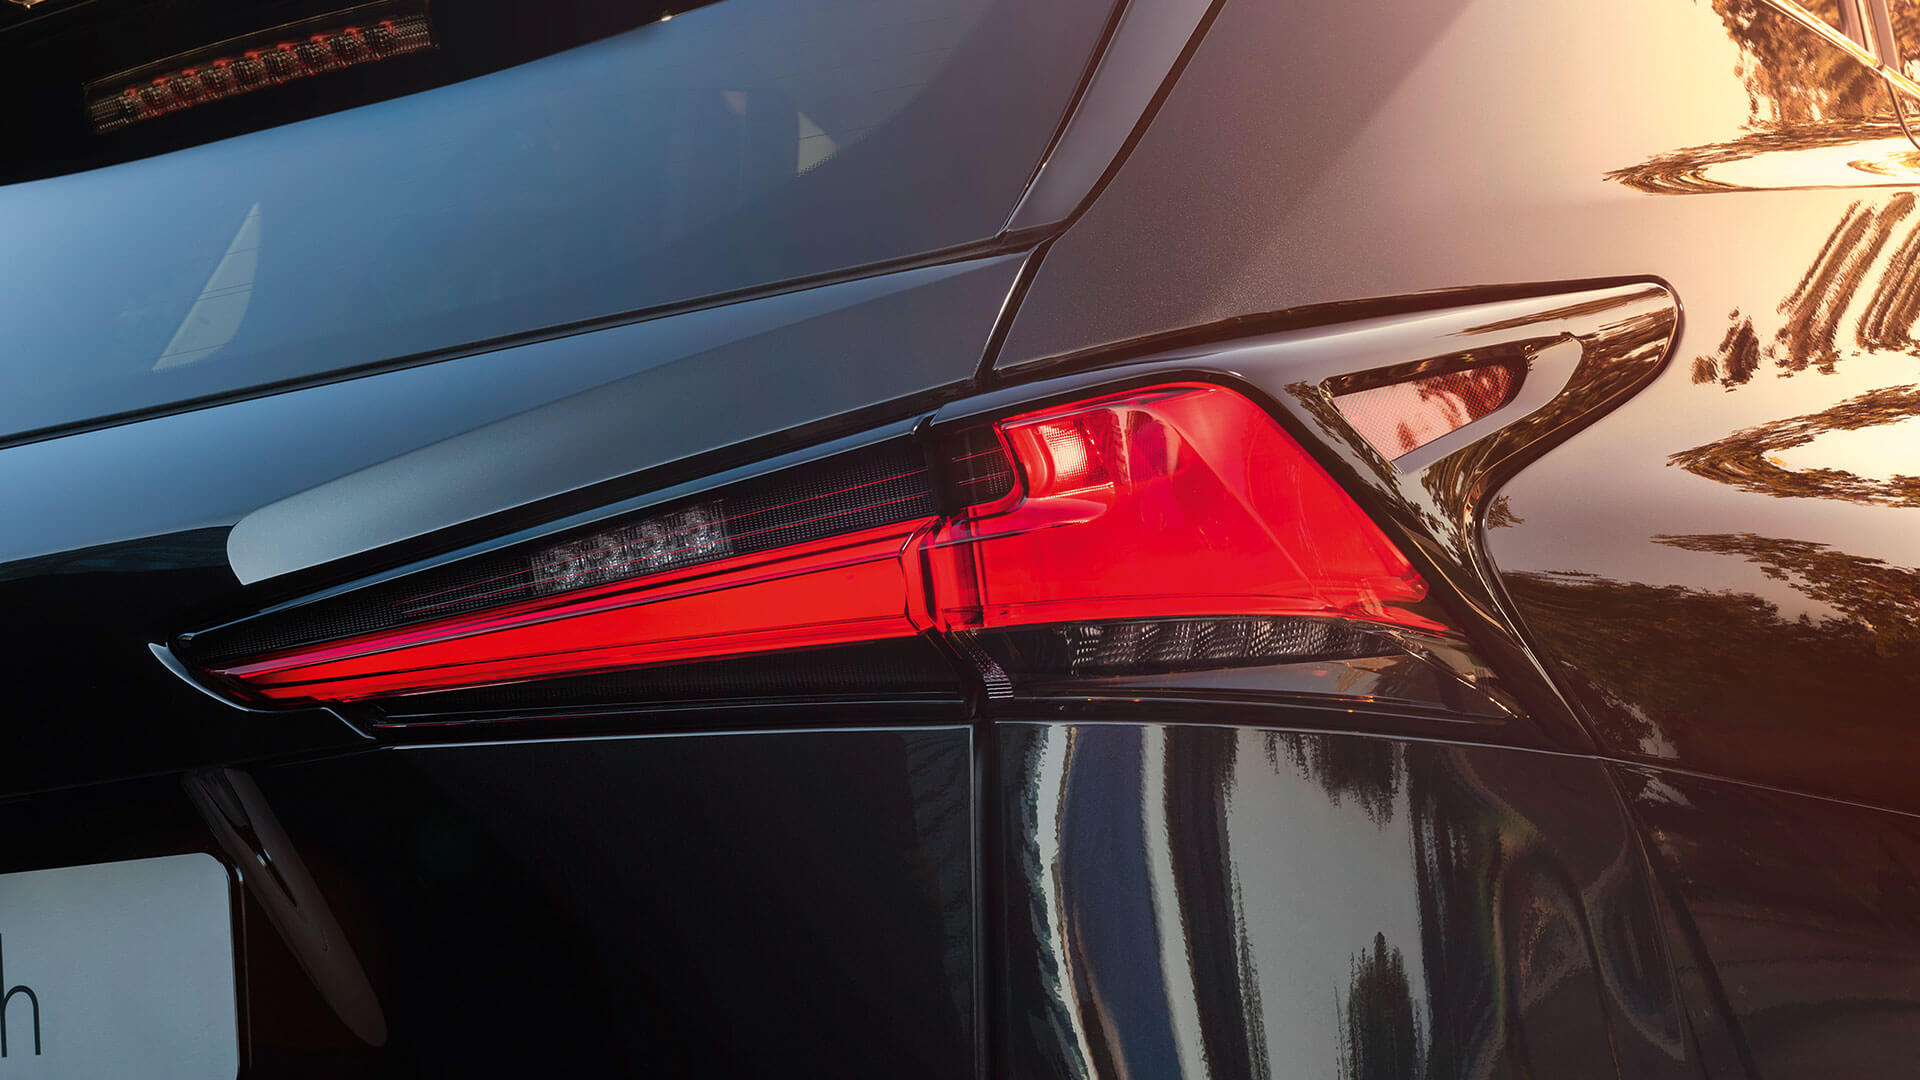 2018 lexus nx my18 features led rear lights